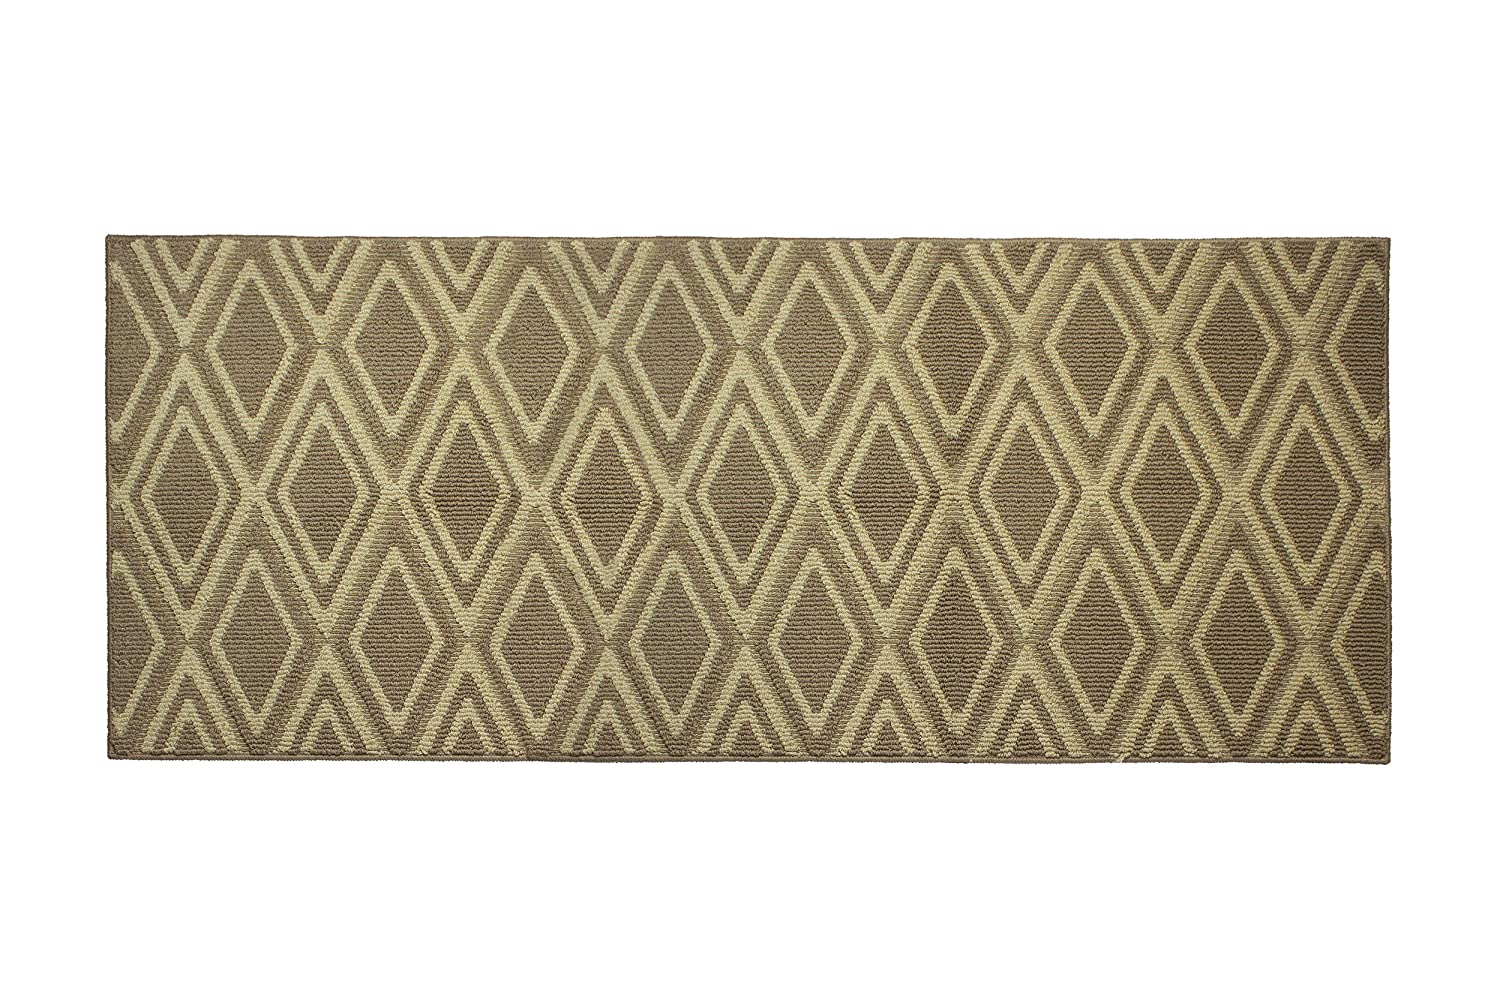 Jean Pierre All Loop Sean 24 x 60 in. Decorative Textured Accent Rug, Linen/Berber Creative Home Ideas YMA004200